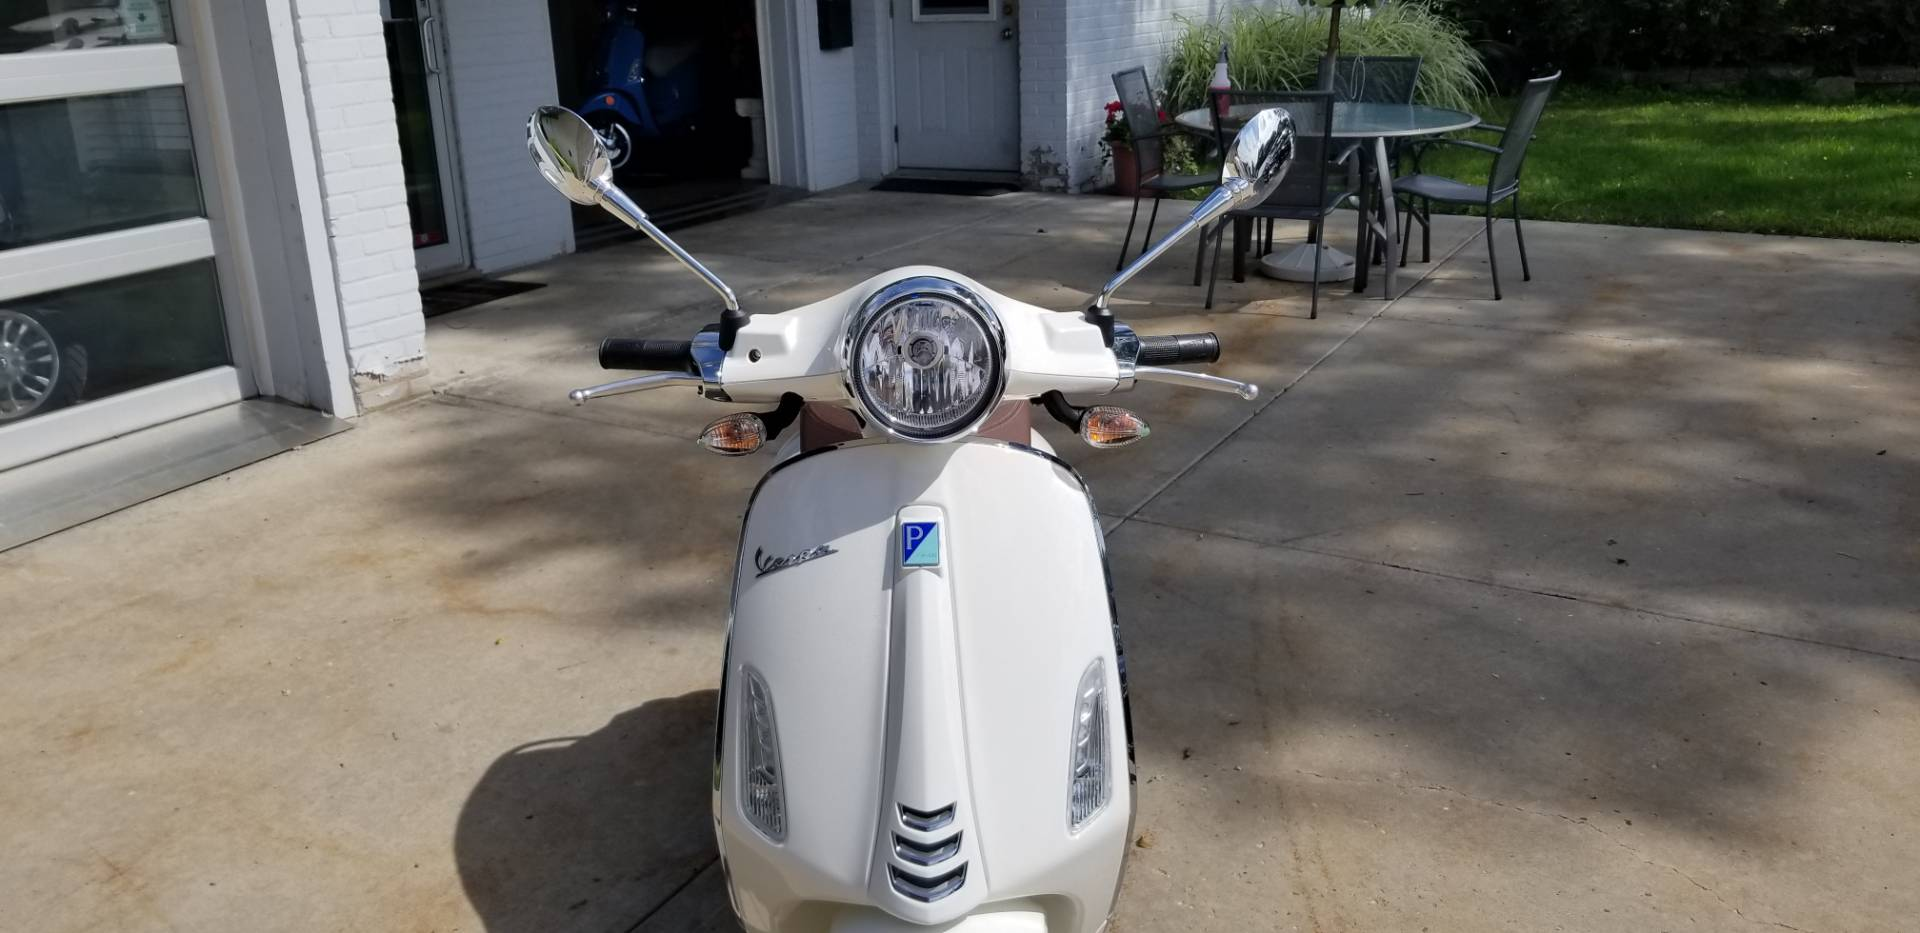 2019 Vespa Primavera 150 in Middleton, Wisconsin - Photo 10